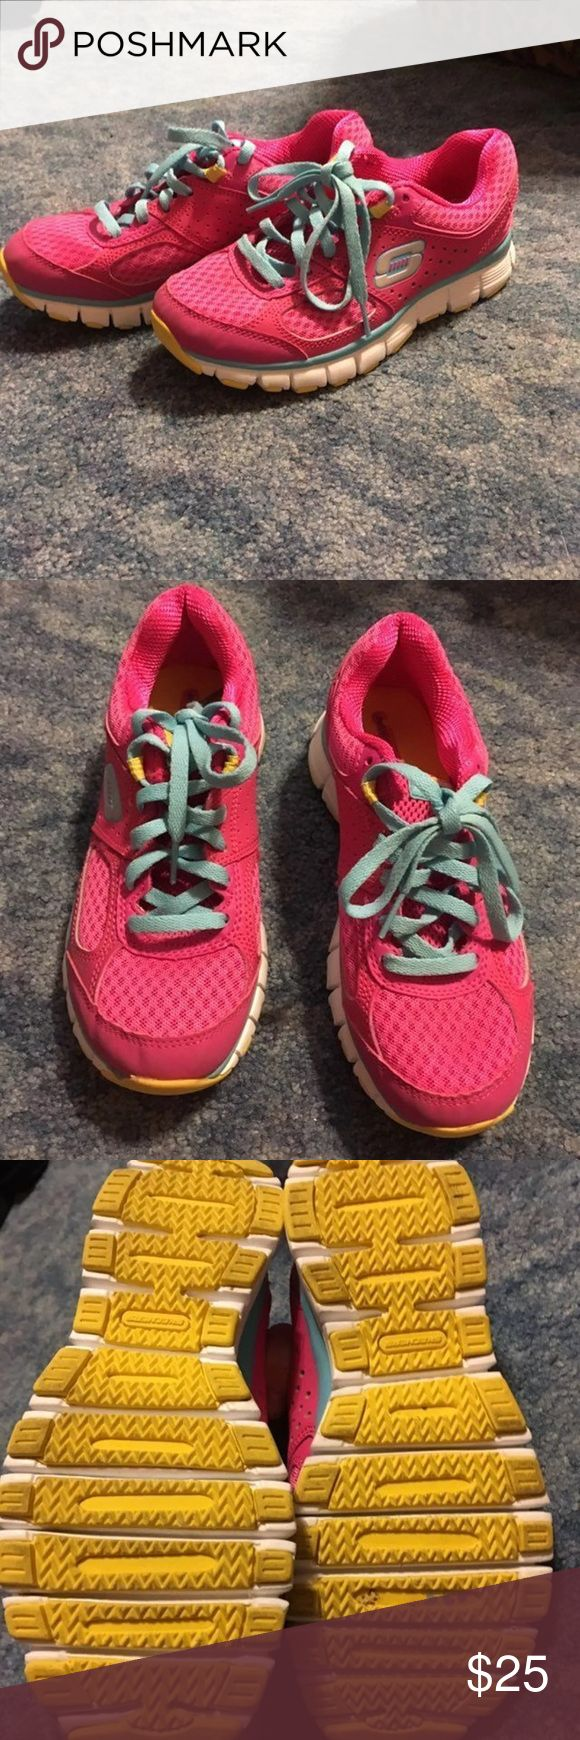 Sketchers Sneakers Worn once. Lightweight. Cute bright colors! Very comfortable! Sketchers Shoes Athletic Shoes